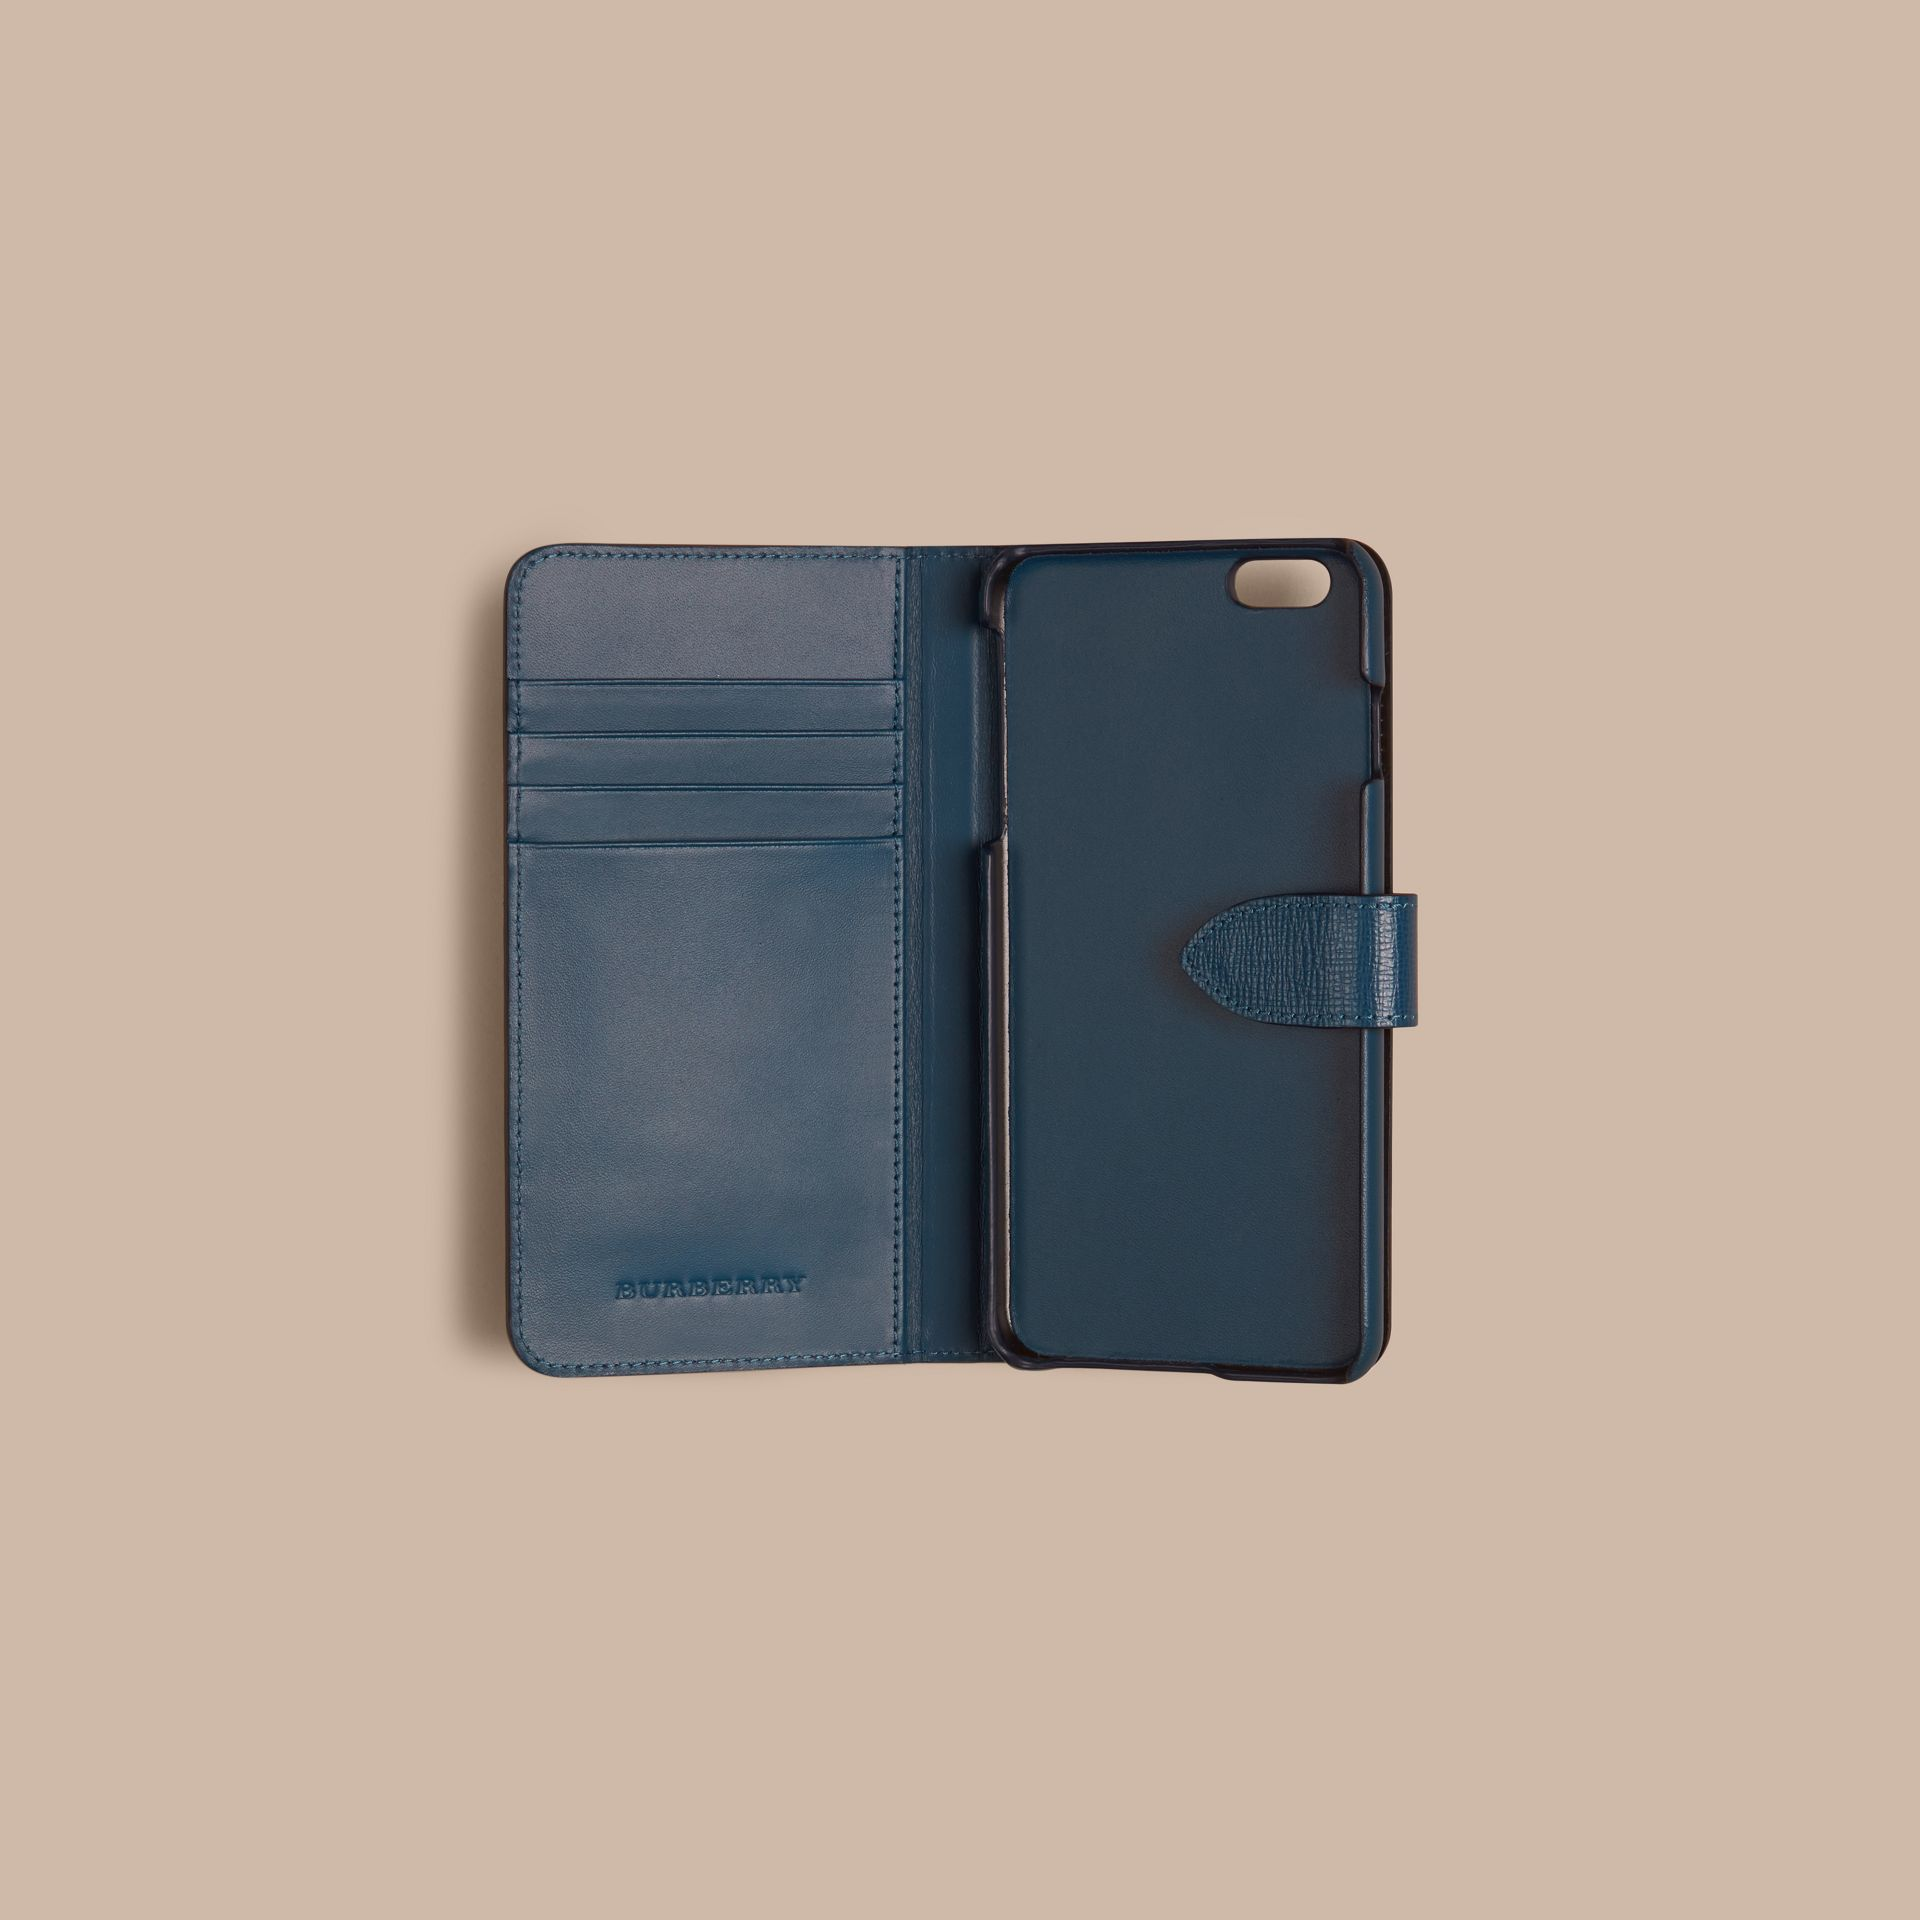 Blu minerale Custodia a libro in pelle London per iPhone 6 Plus Blu Minerale - immagine della galleria 2